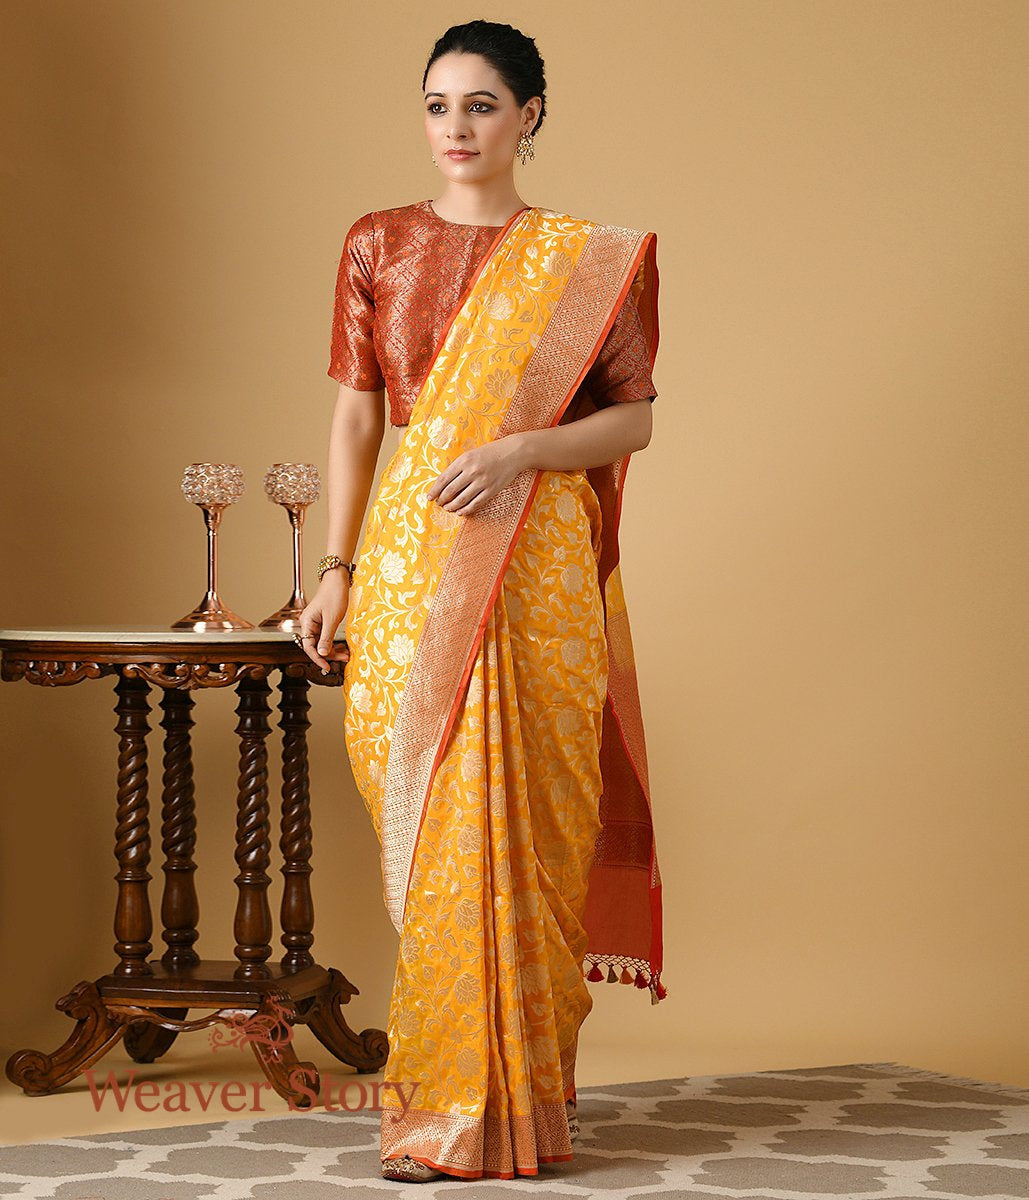 Handwoven Yellow and Red Banarasi Silk Saree with Gold Zari Jaal